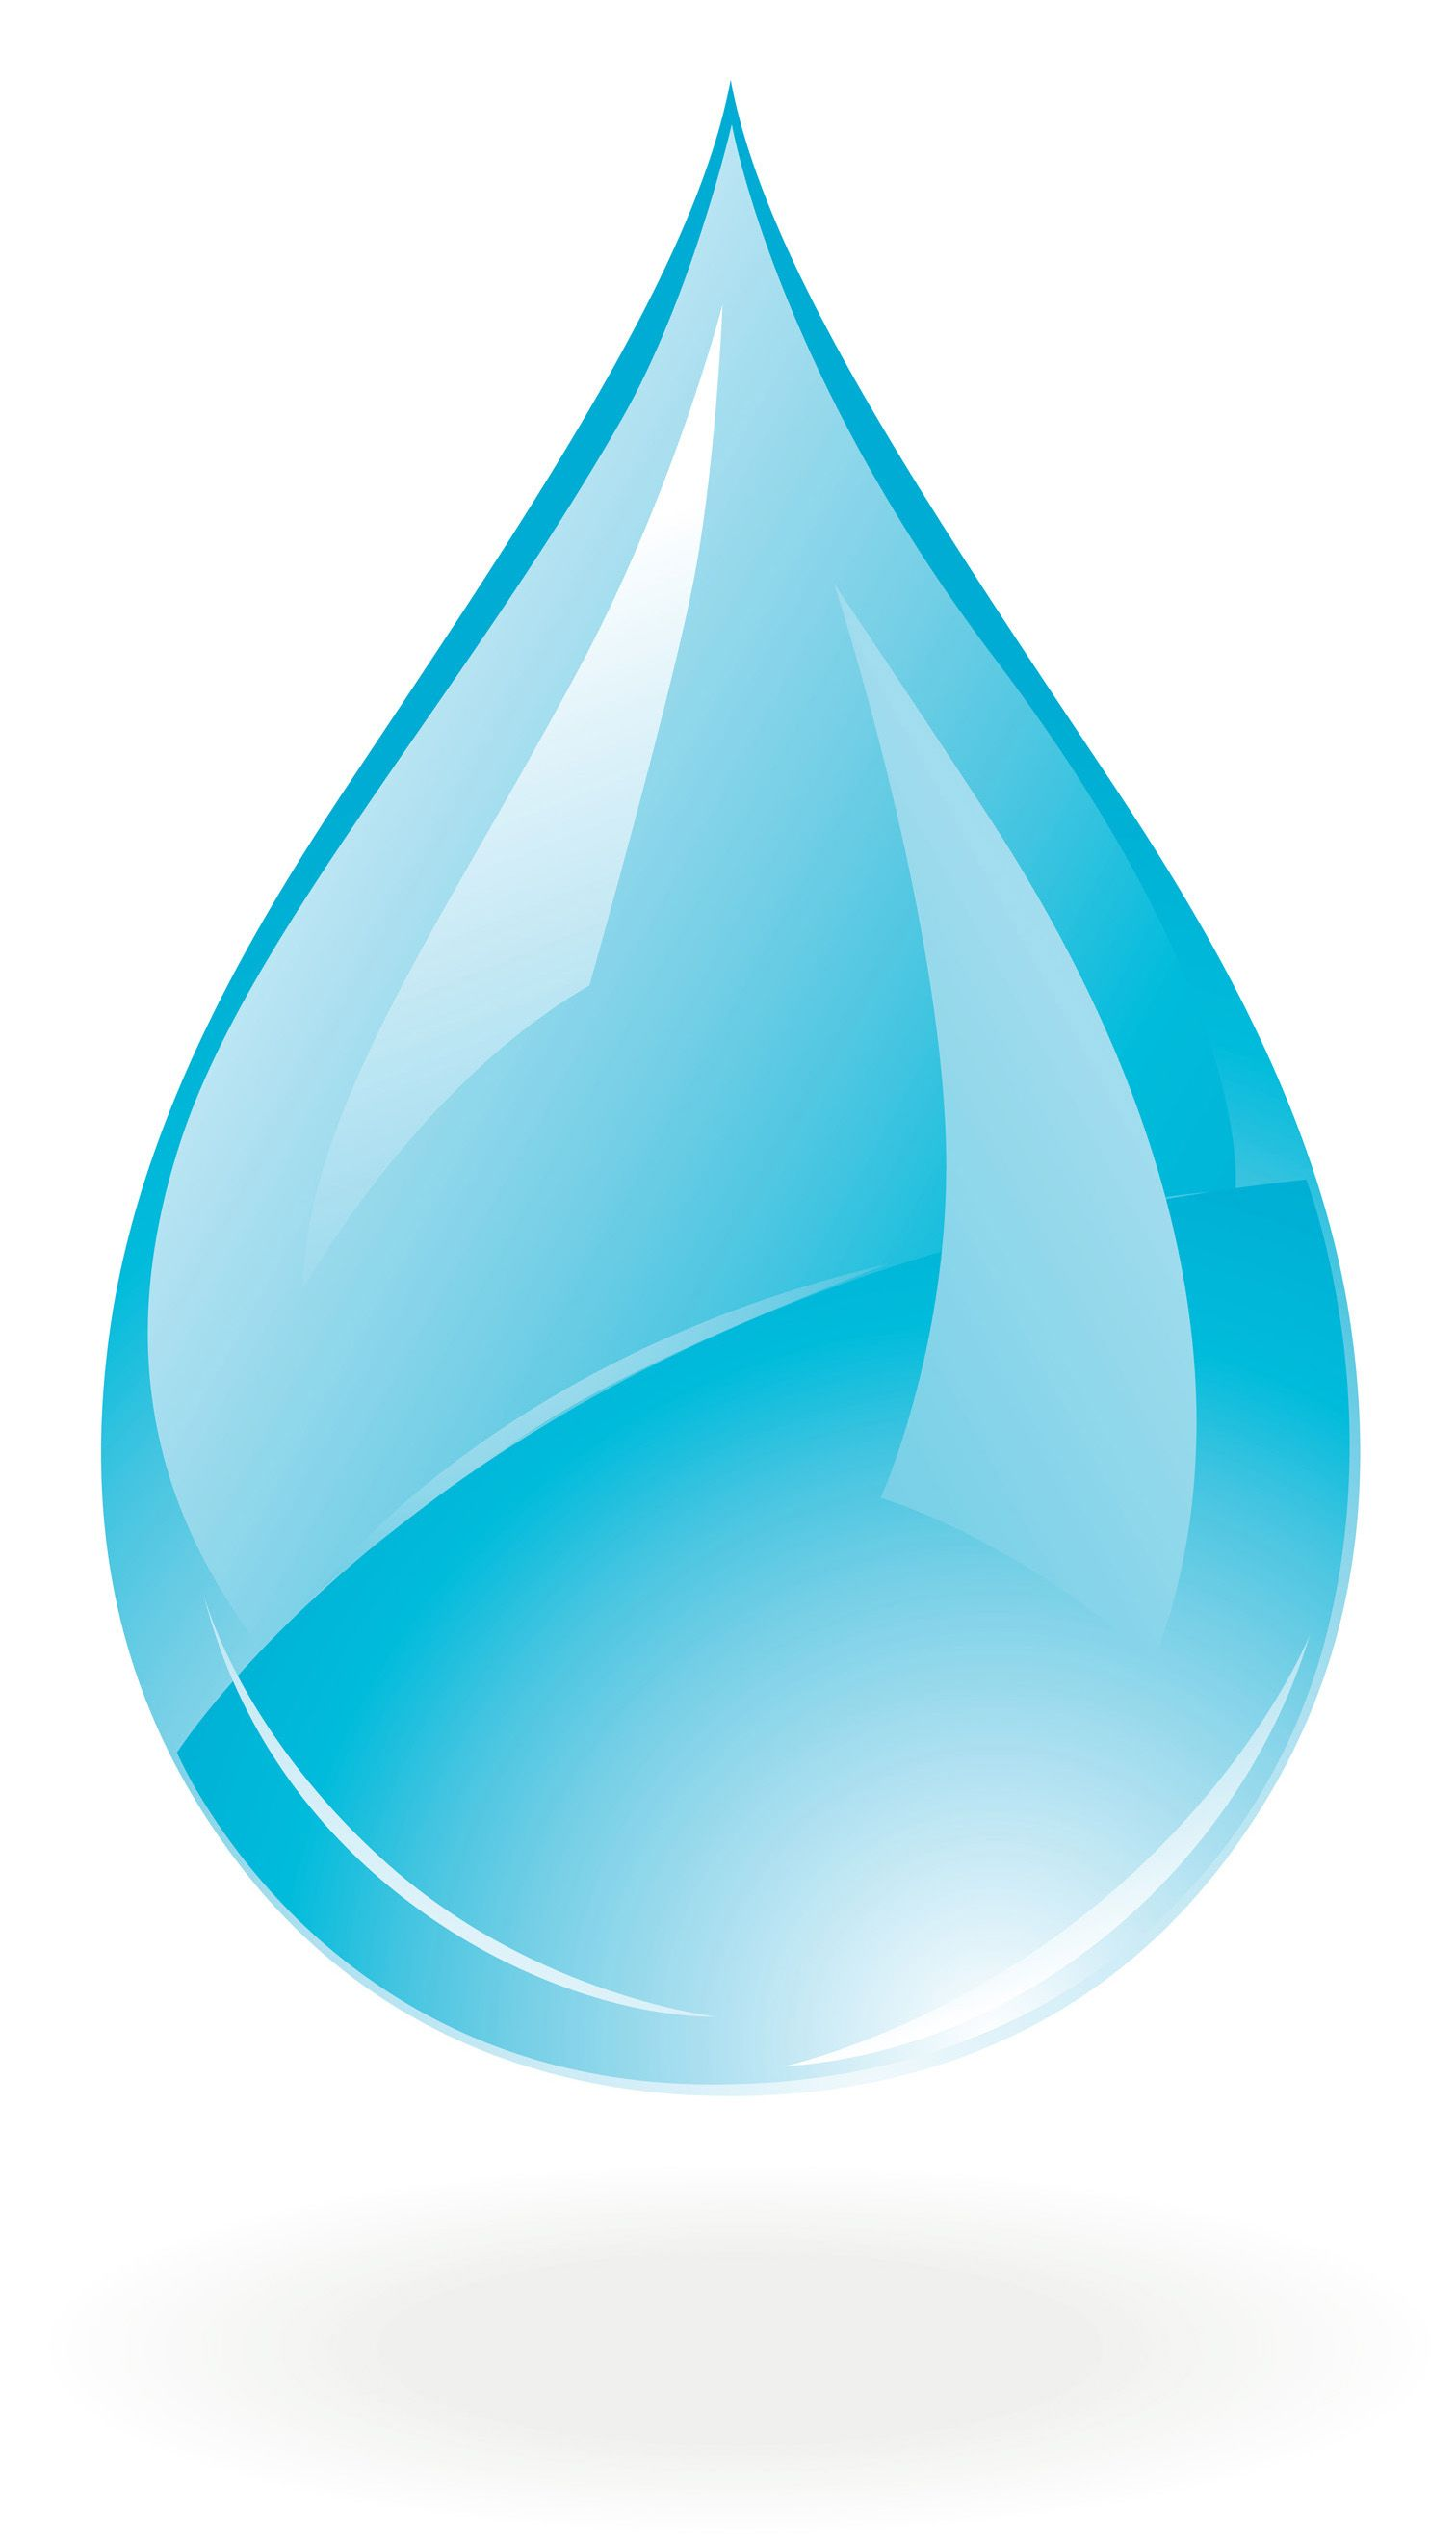 small resolution of water drop psd clipart